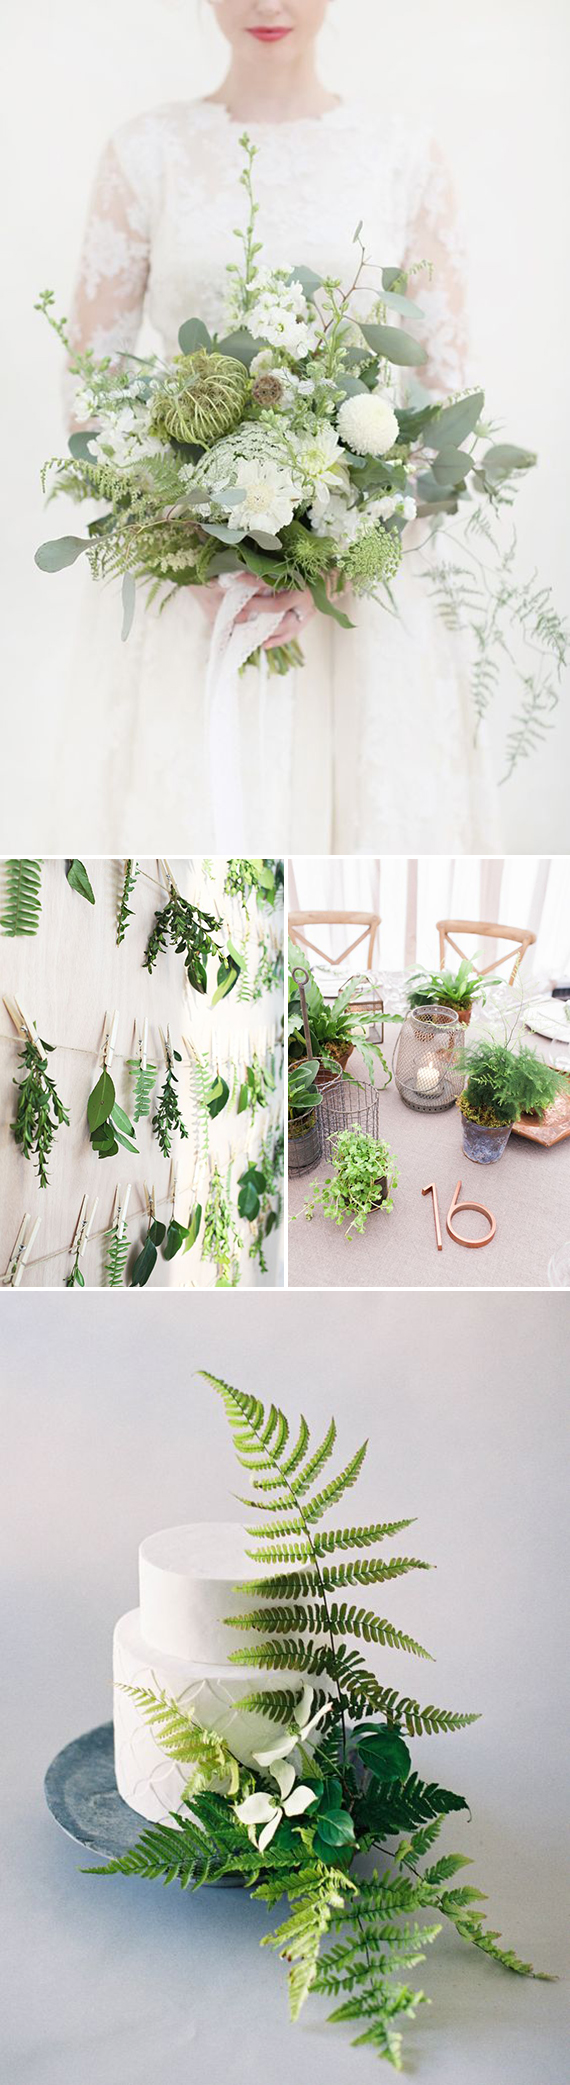 Pantone Color of the Year - Wedding Ideas